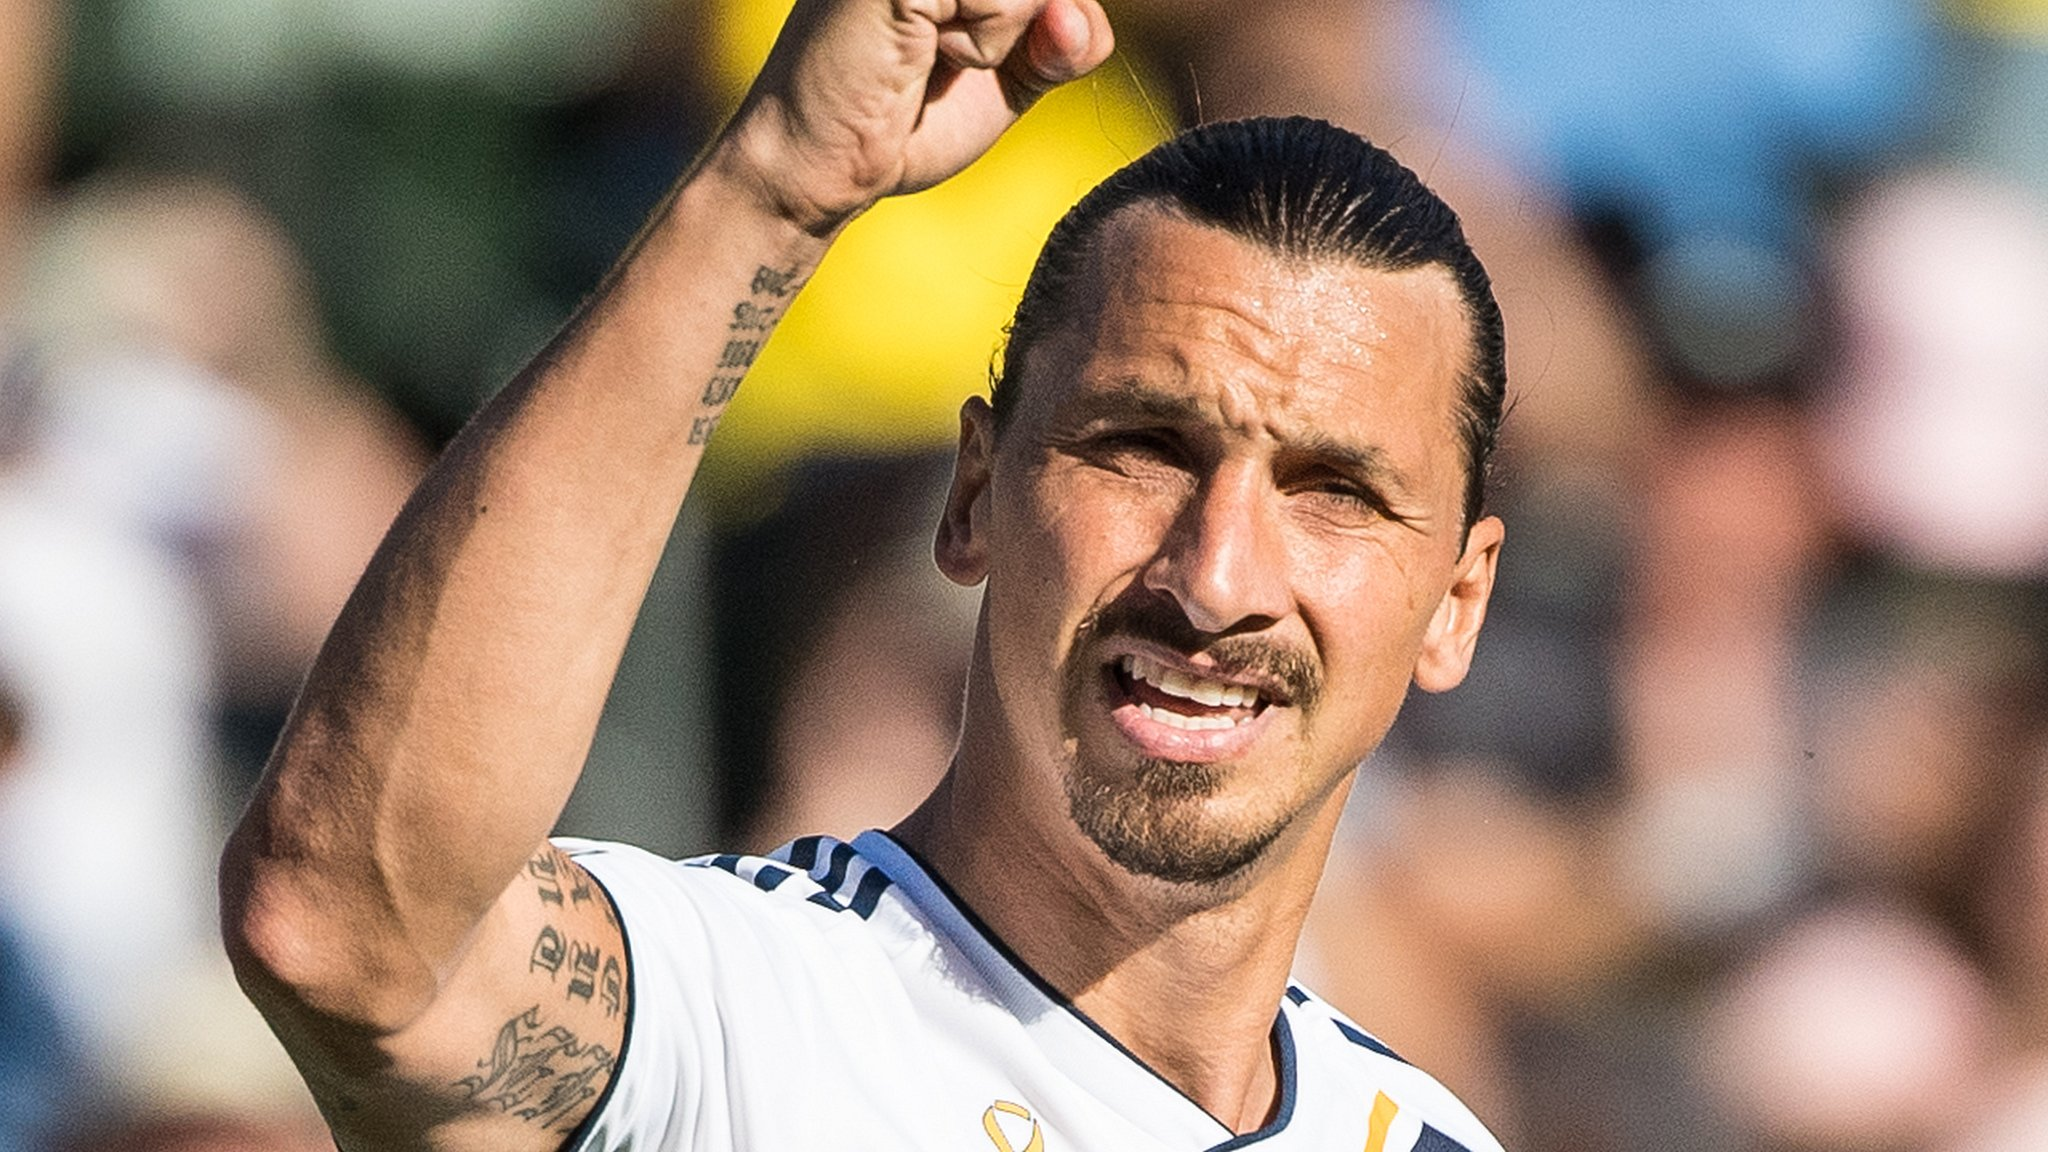 Zlatan Ibrahimovic: LA Galaxy striker to stay with Major League Soccer side for 2019